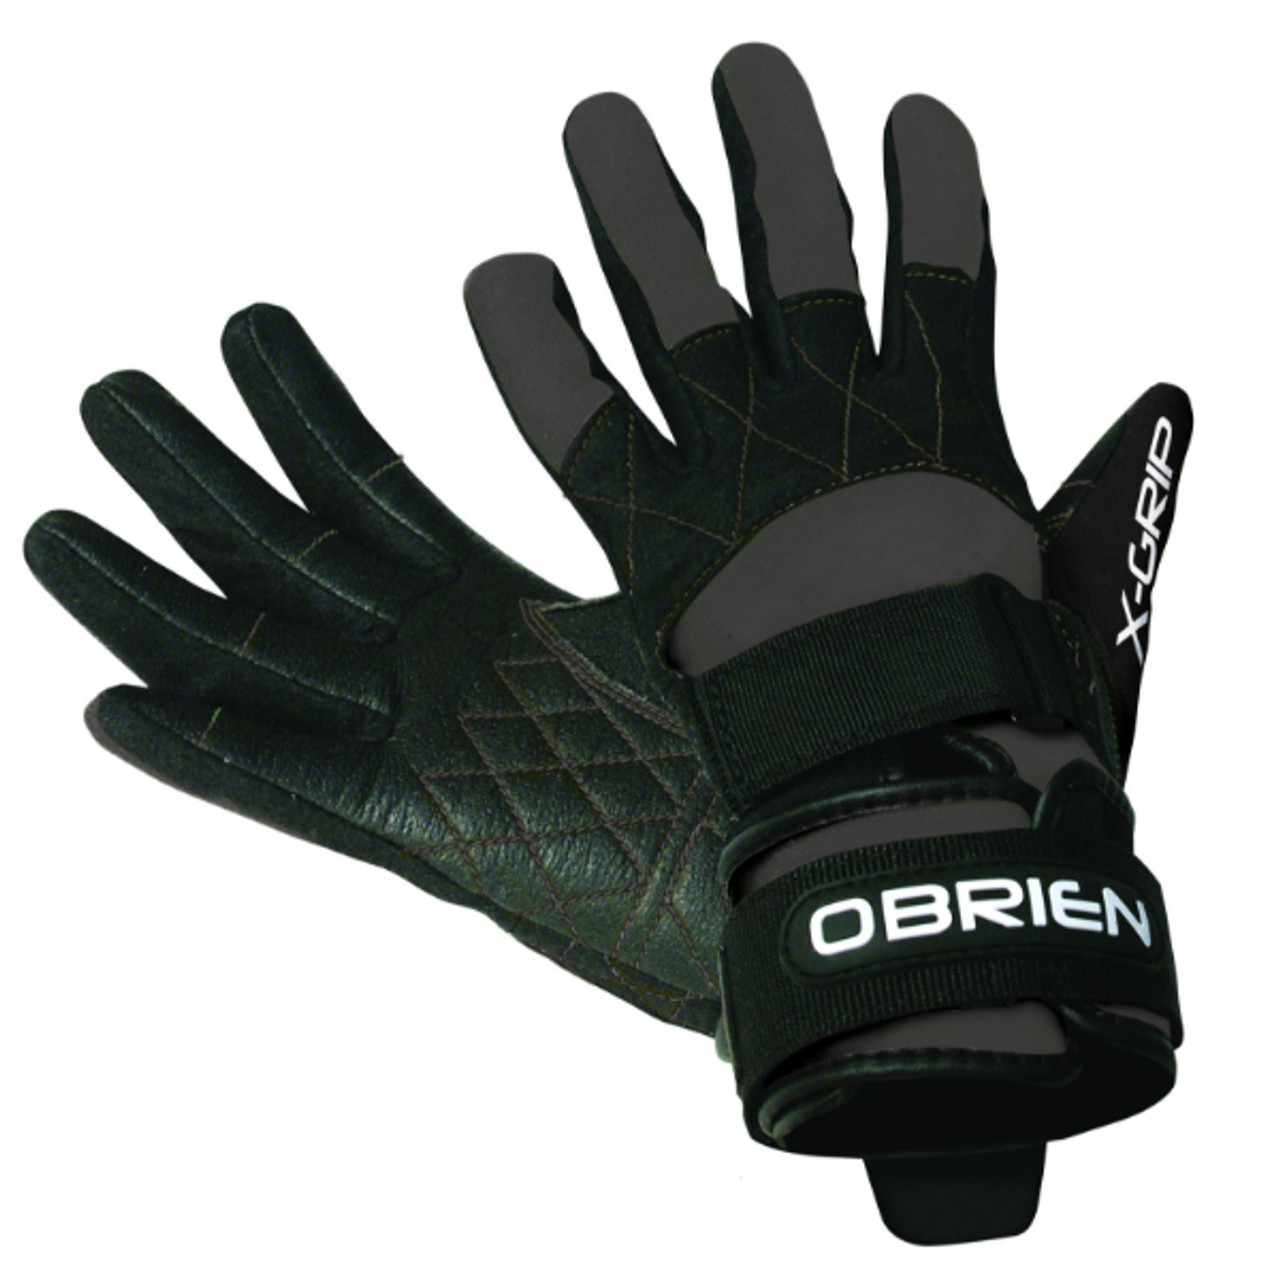 O/'Brien Competitor X Grip Men/'s Water Ski Glove